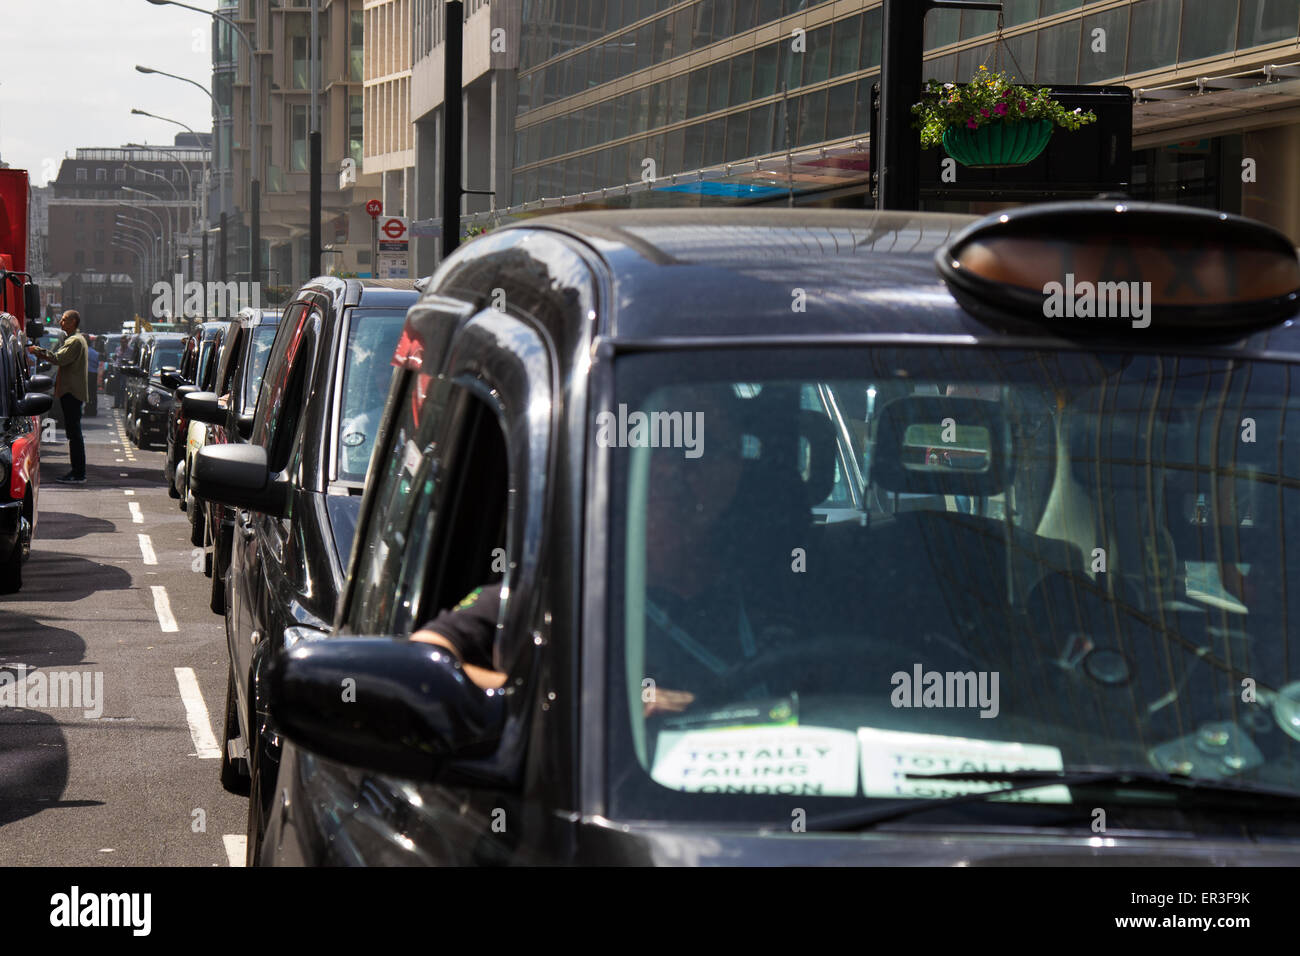 Victoria, London, UK. 26th May, 2015.  London's cabbies protest near Transport For London's HQ in Victoria against Stock Photo